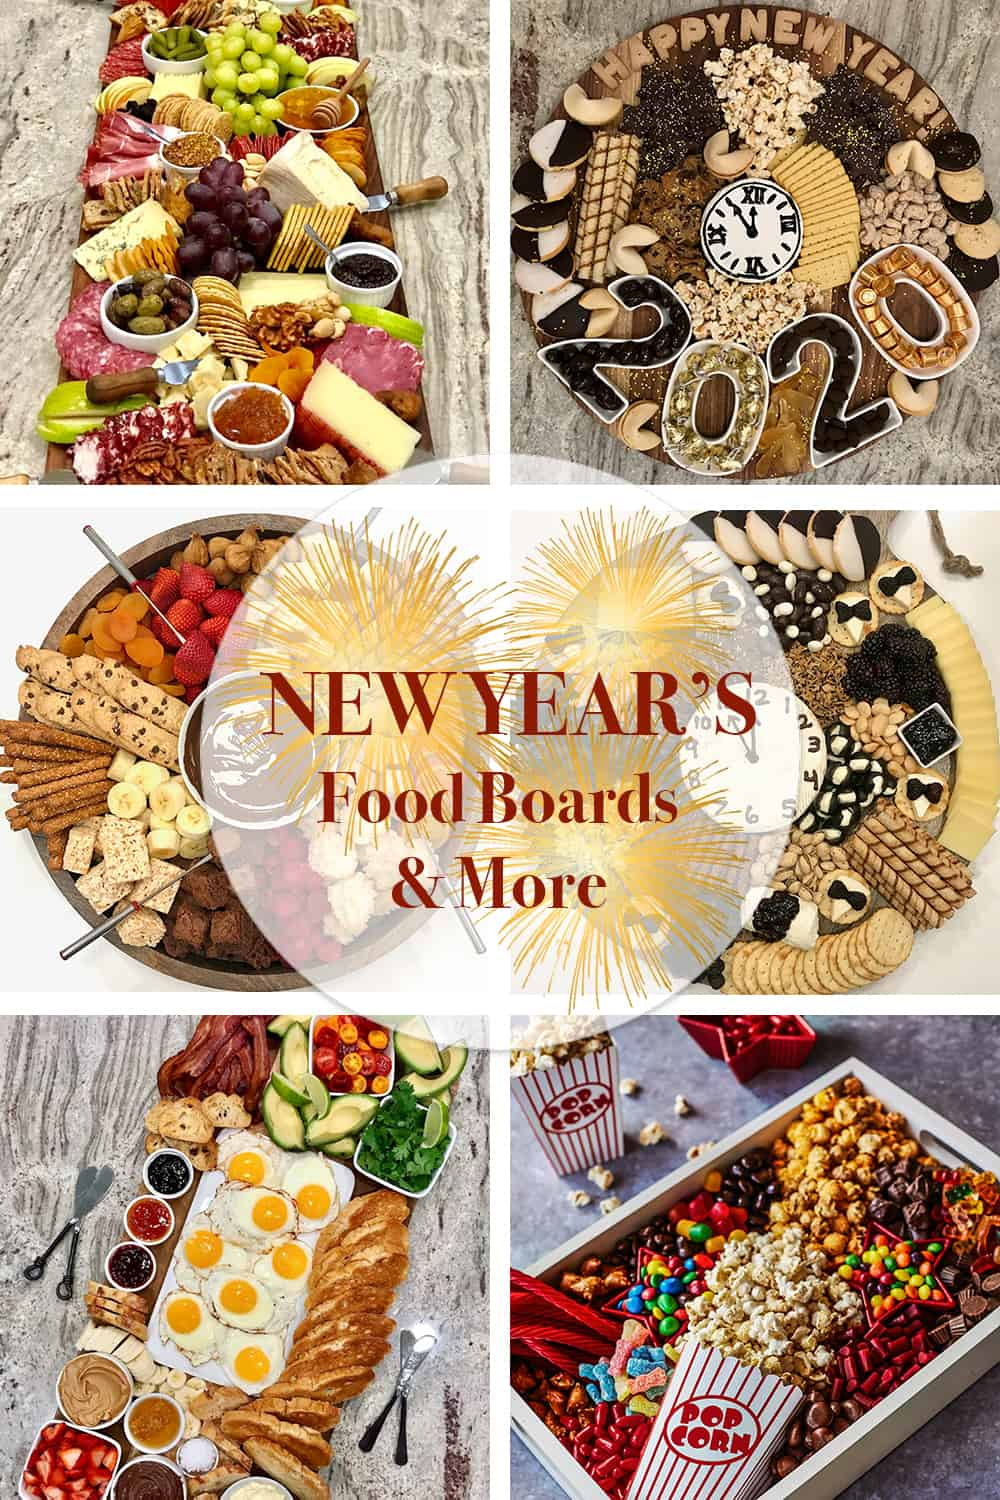 New Year's Food Boards & More by The BakerMama